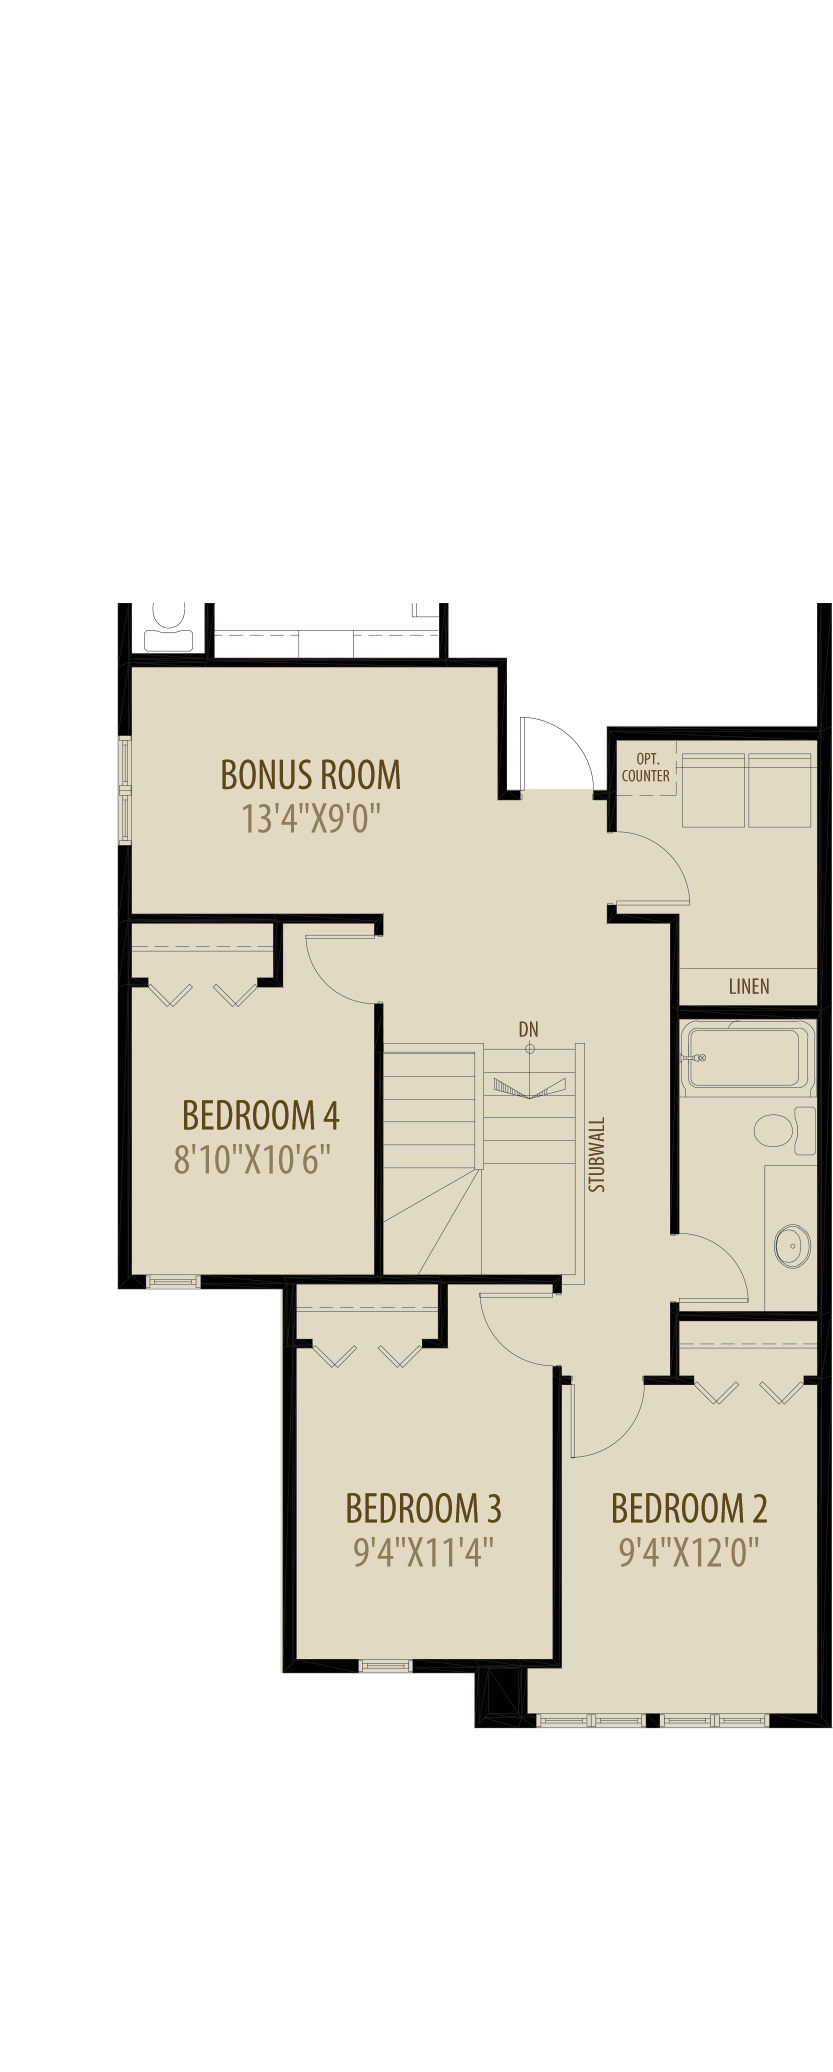 Option 3 4th Bedroom adds 60 sq ft